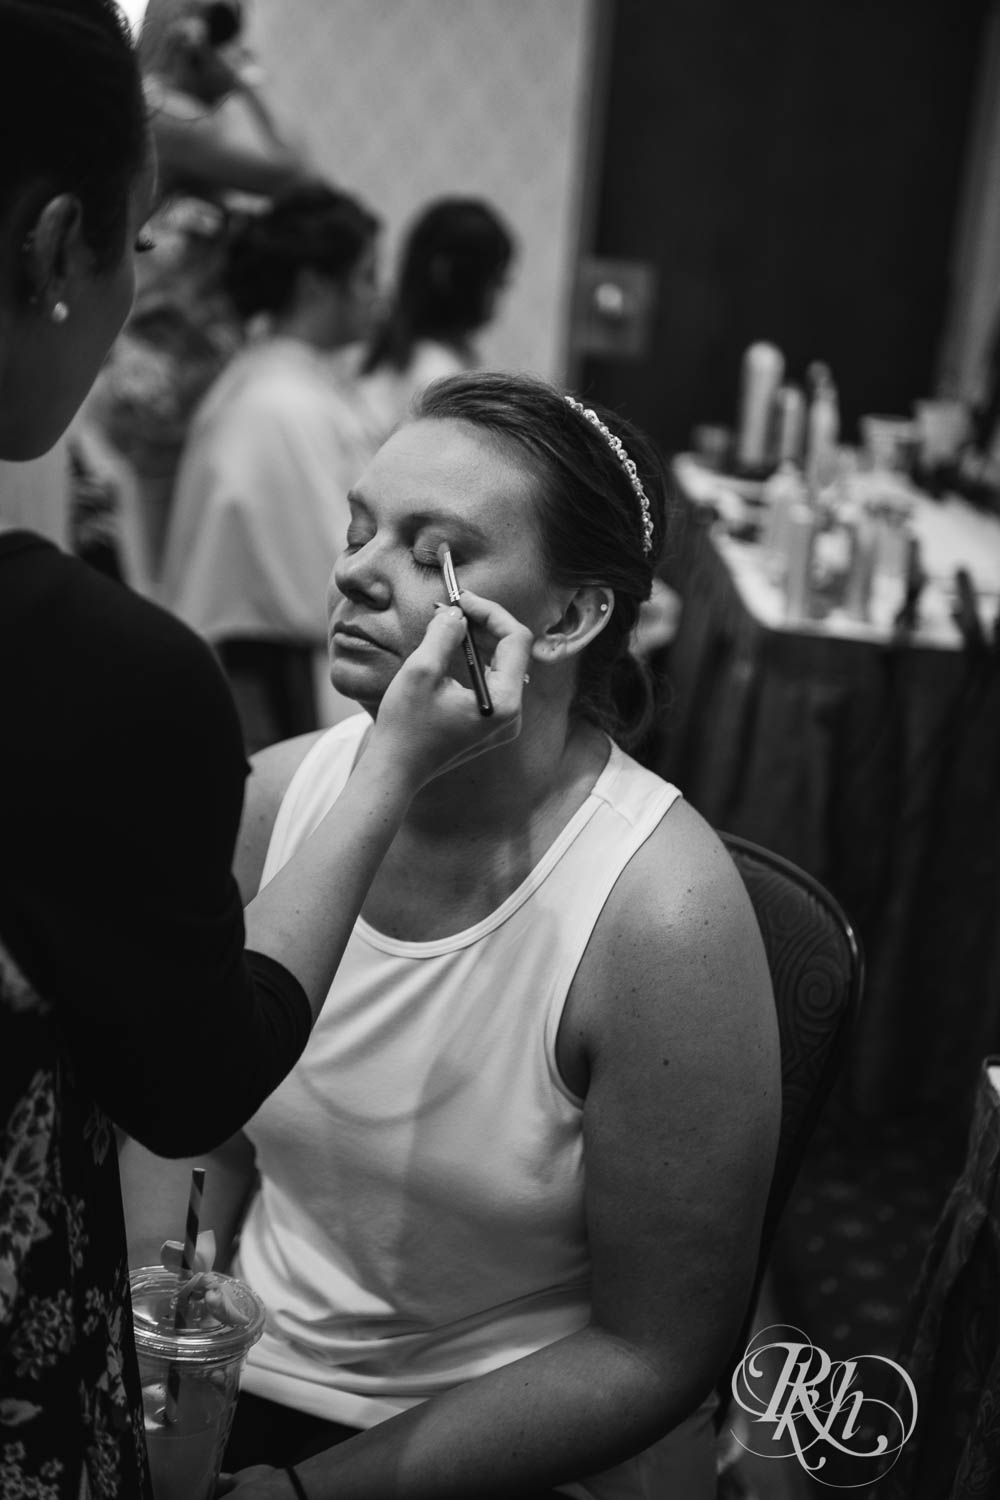 Kayla & Travis - Minnesota Wedding Photography - Crowne Plaza Minneapolis - RKH Images - Blog  (18 of 61).jpg